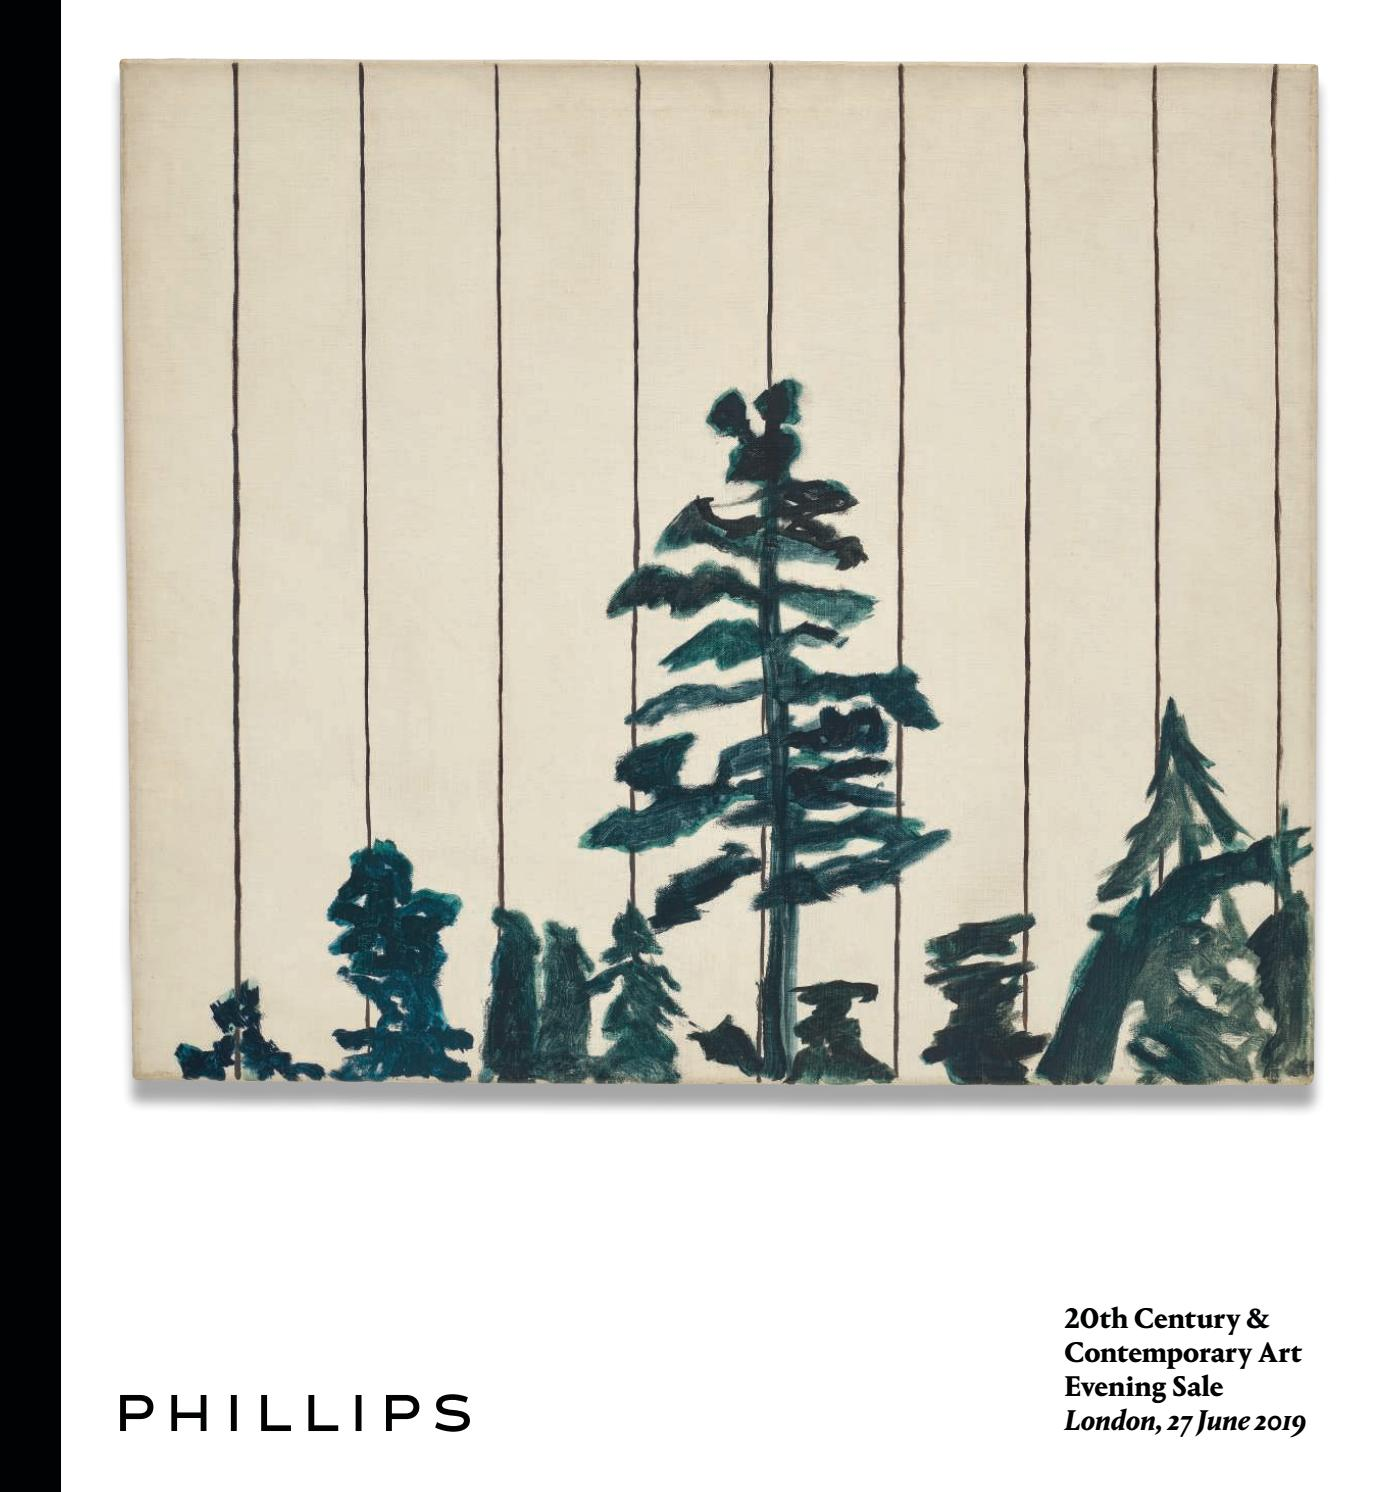 20th Century Contemporary Art Evening Sale Catalogue By